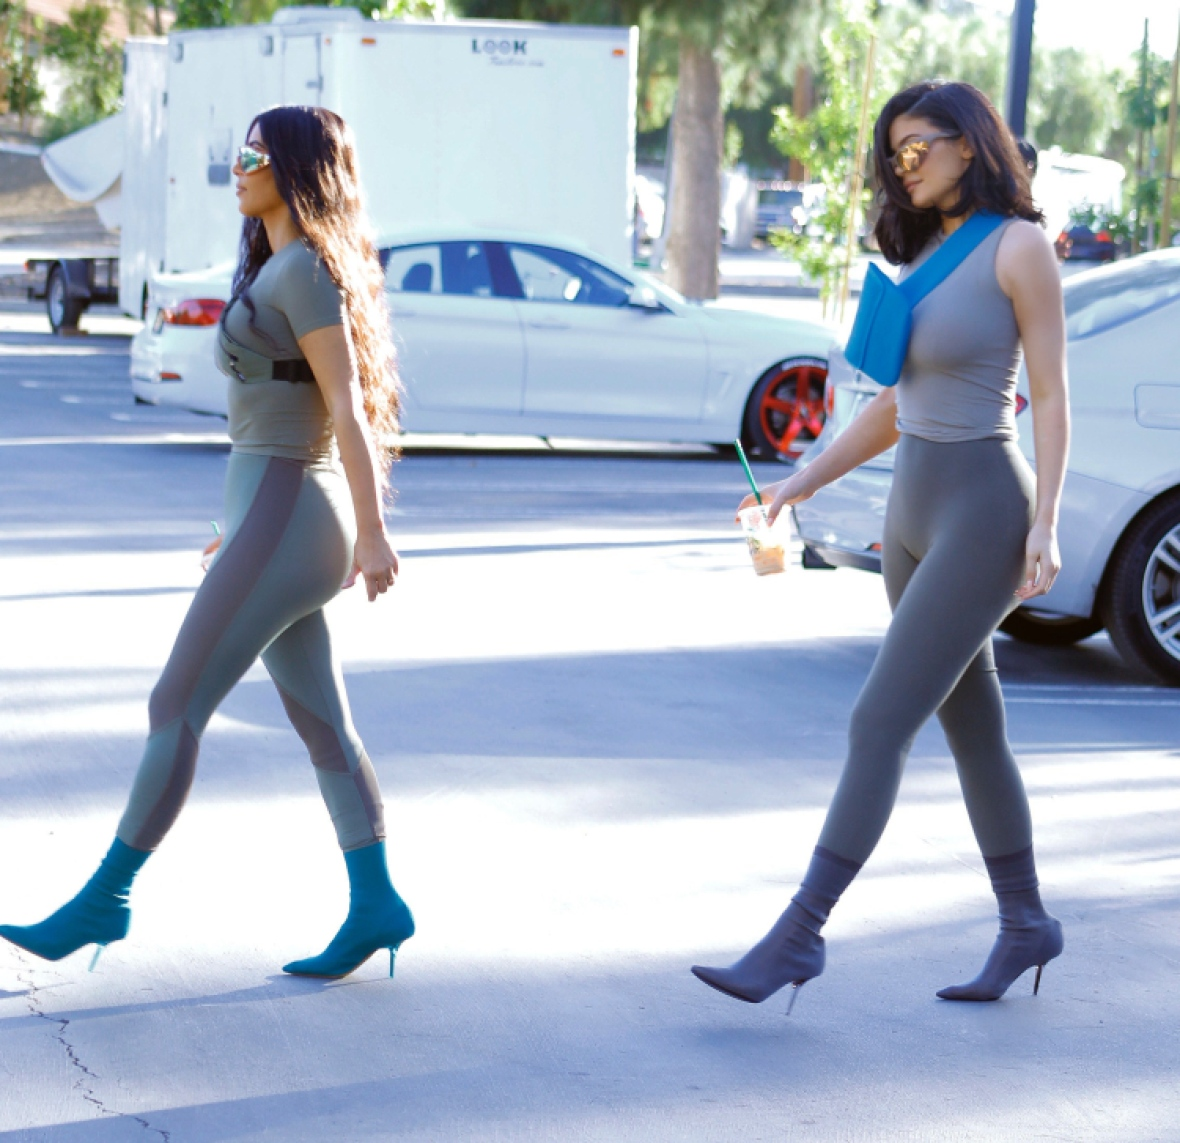 https://www.lifeandstylemag.com/wp-content/uploads/2018/07/kim-kardashian-kylie-jenner-matching-outfits.jpg?w=750&crop=1&resize=1180%2C1143